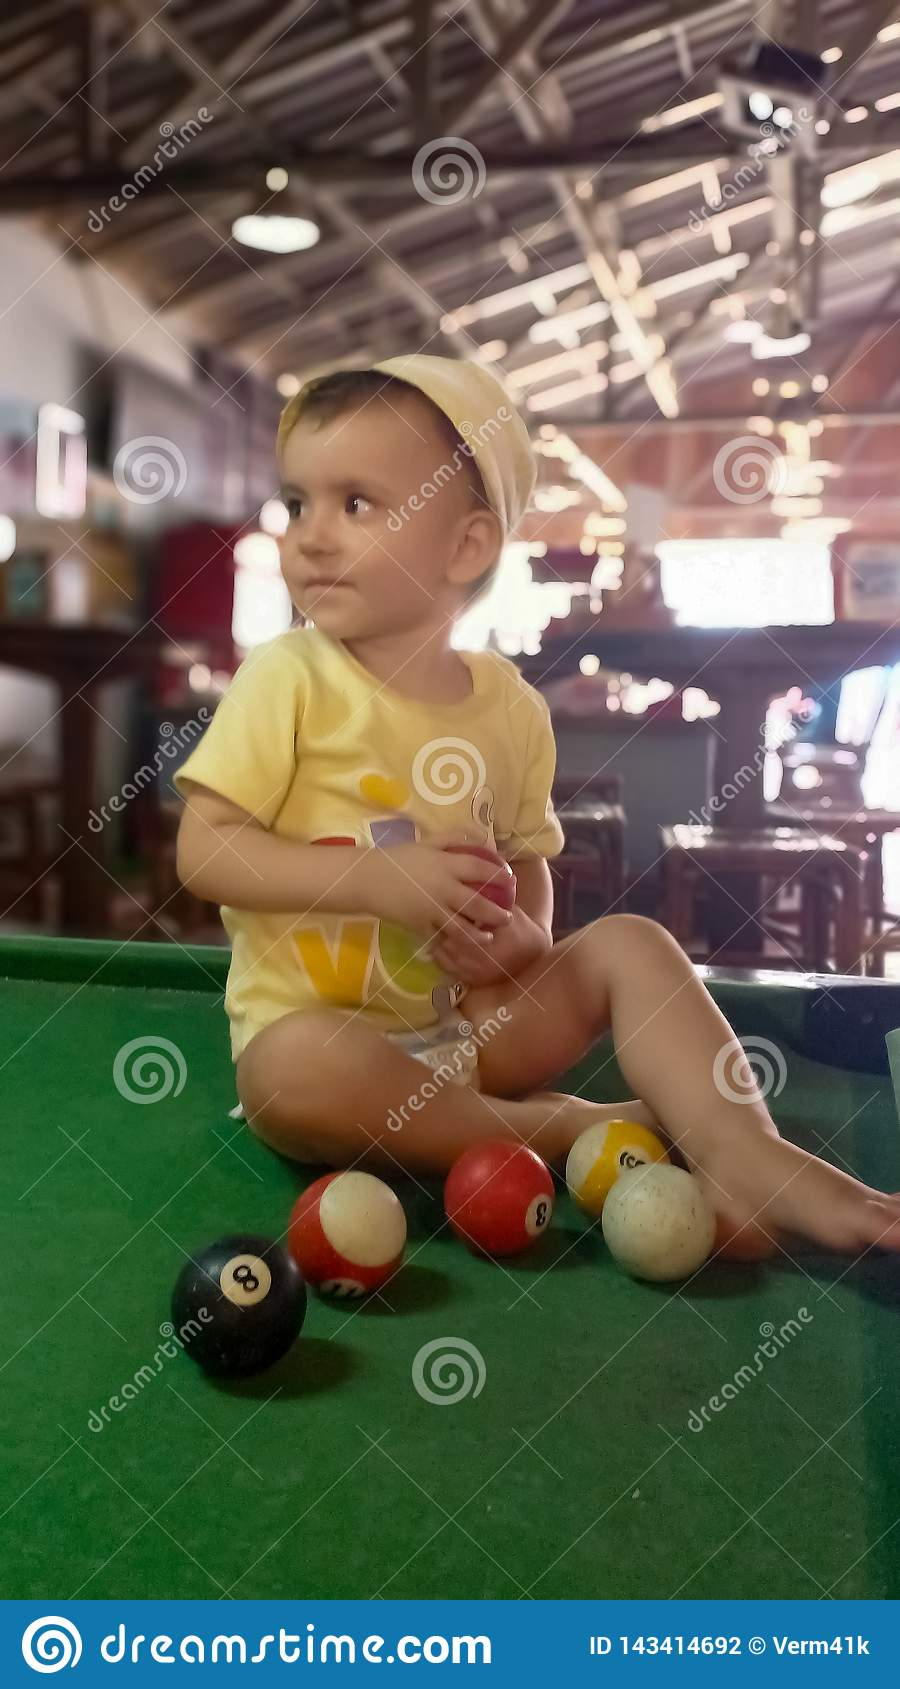 Cute little girl playing in pool table with balls.